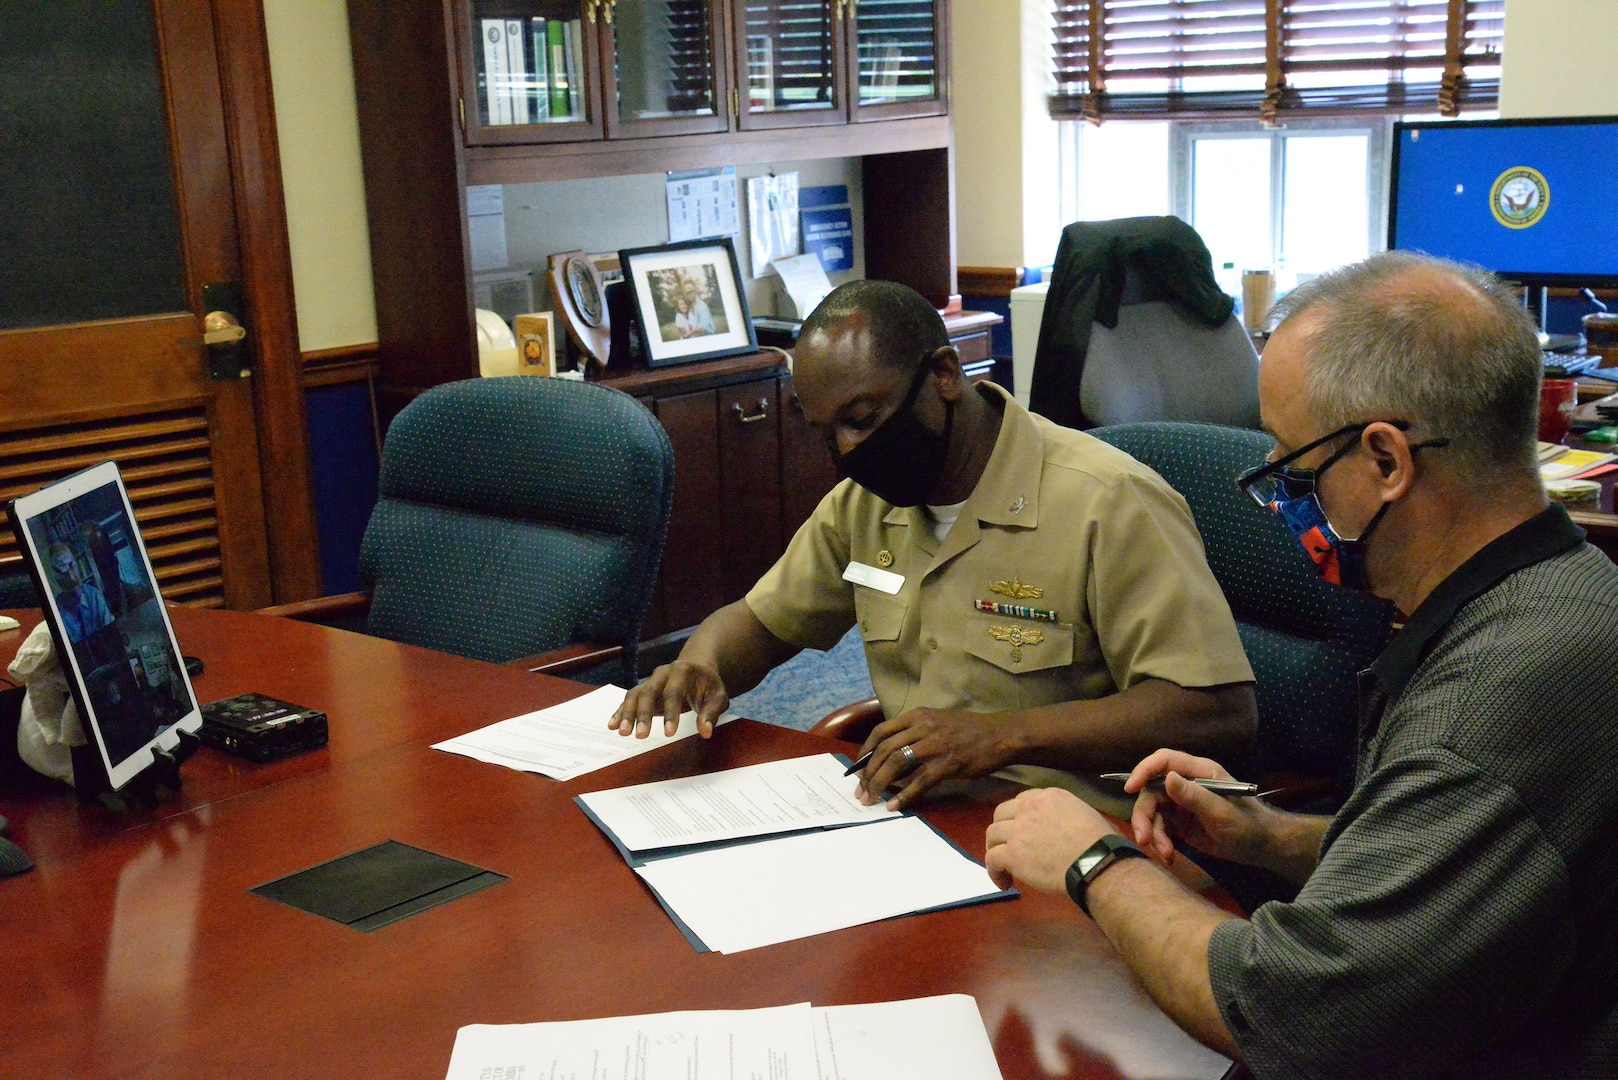 Capt. Cedric McNeal, commanding officer of Naval Surface Warfare Center, Carderock Division, and Technical Director Larry Tarasek sign an Education Partnership Agreement from their office in West Bethesda, Md.